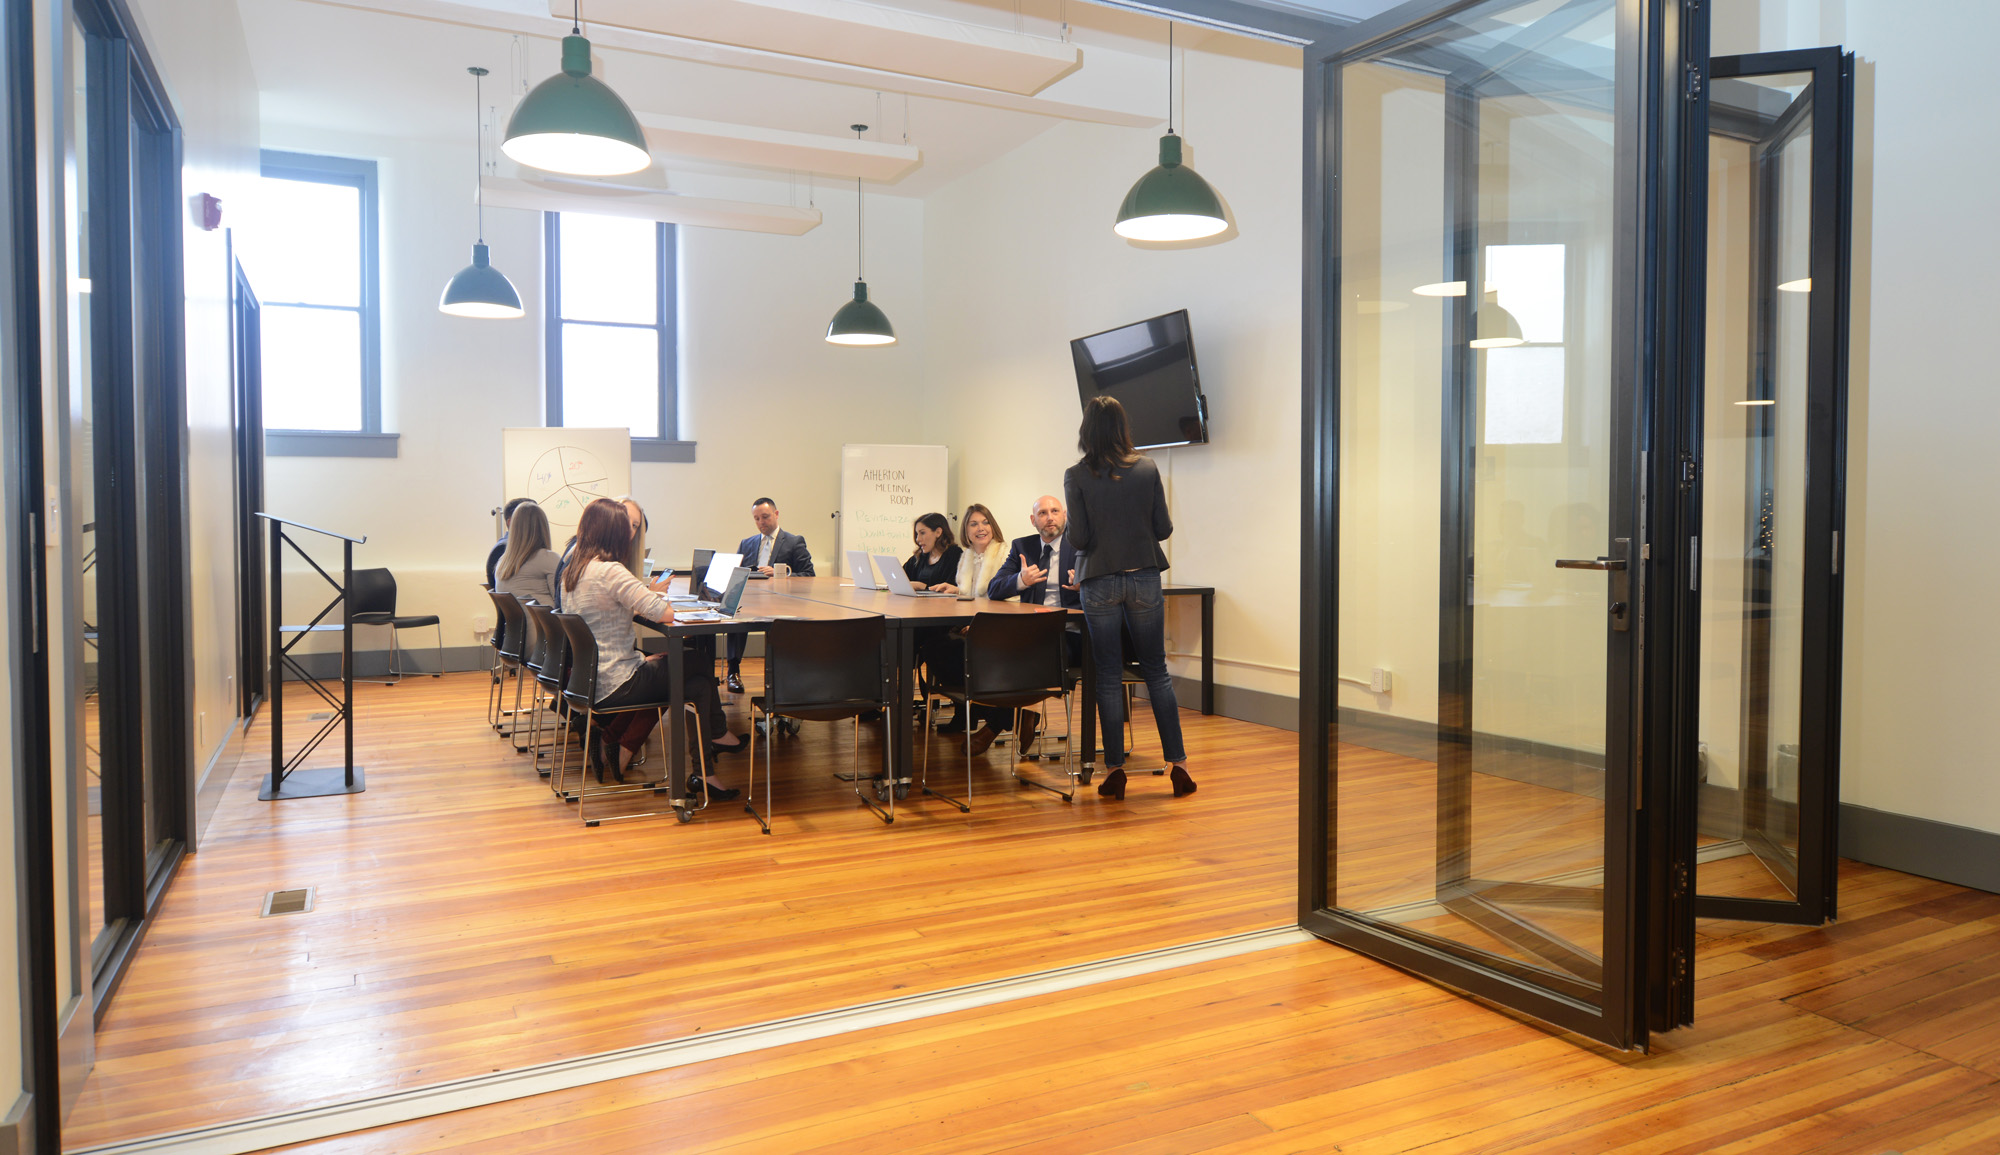 Office - NEWORK first floor conference 2.jpg